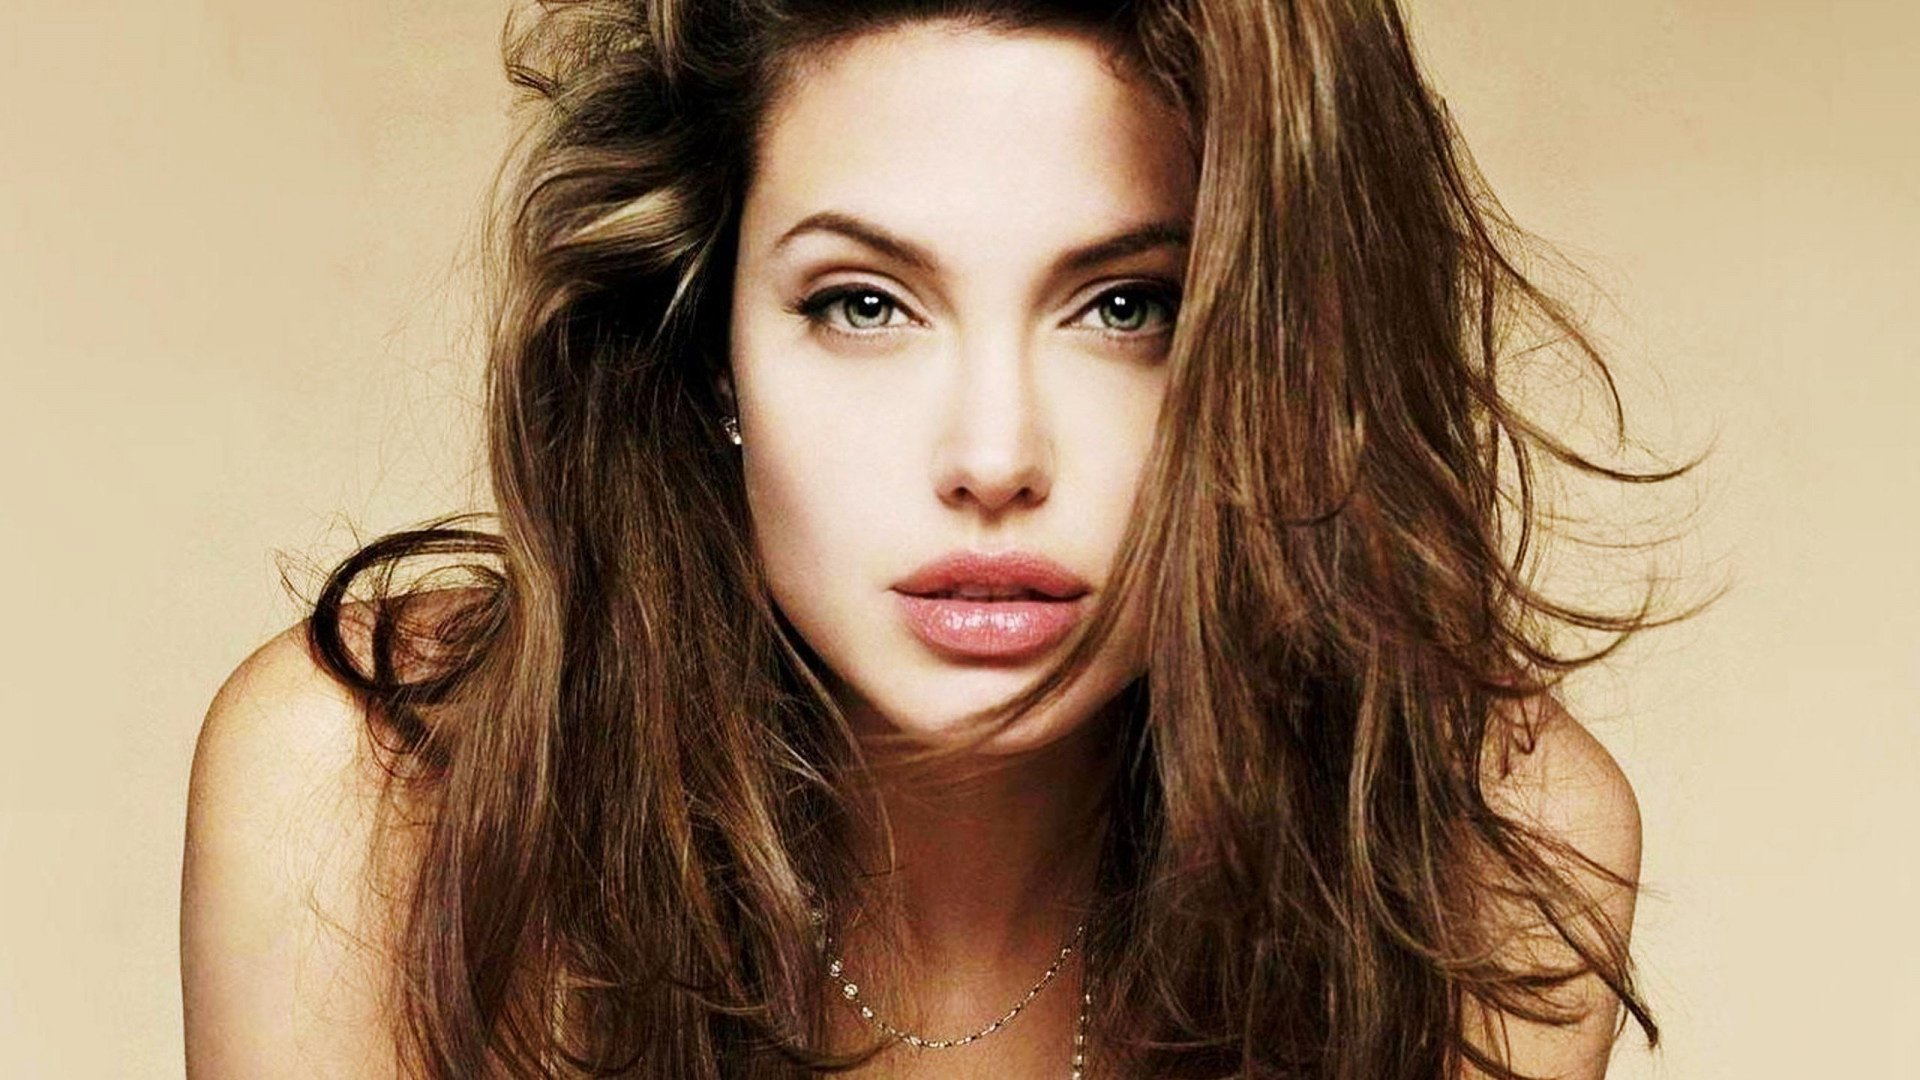 Pictures-Angelina-Jolie-22-HD-Images-Wallpapers